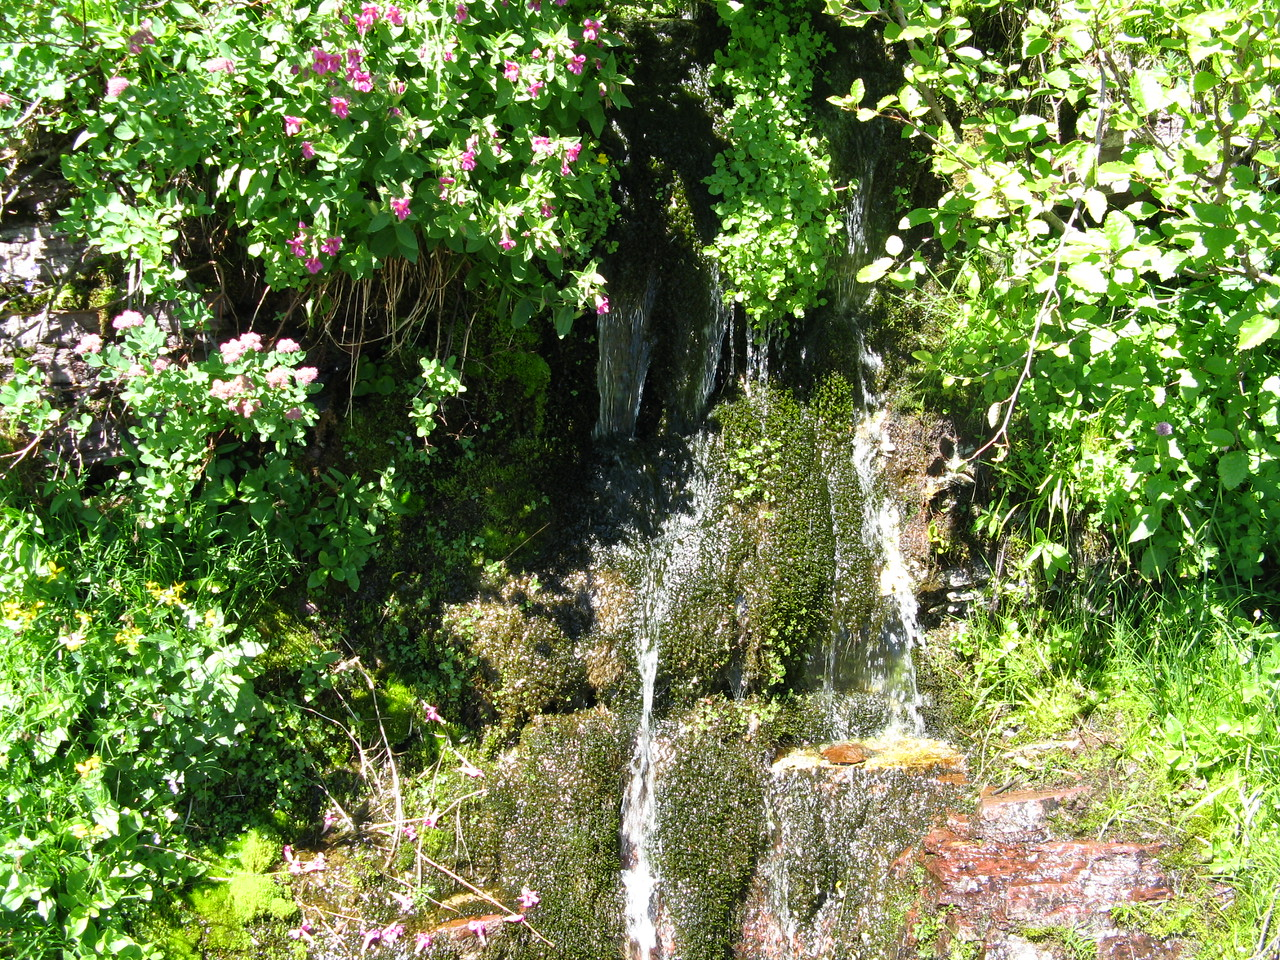 A water fall with blooming wildflowers along the trail.